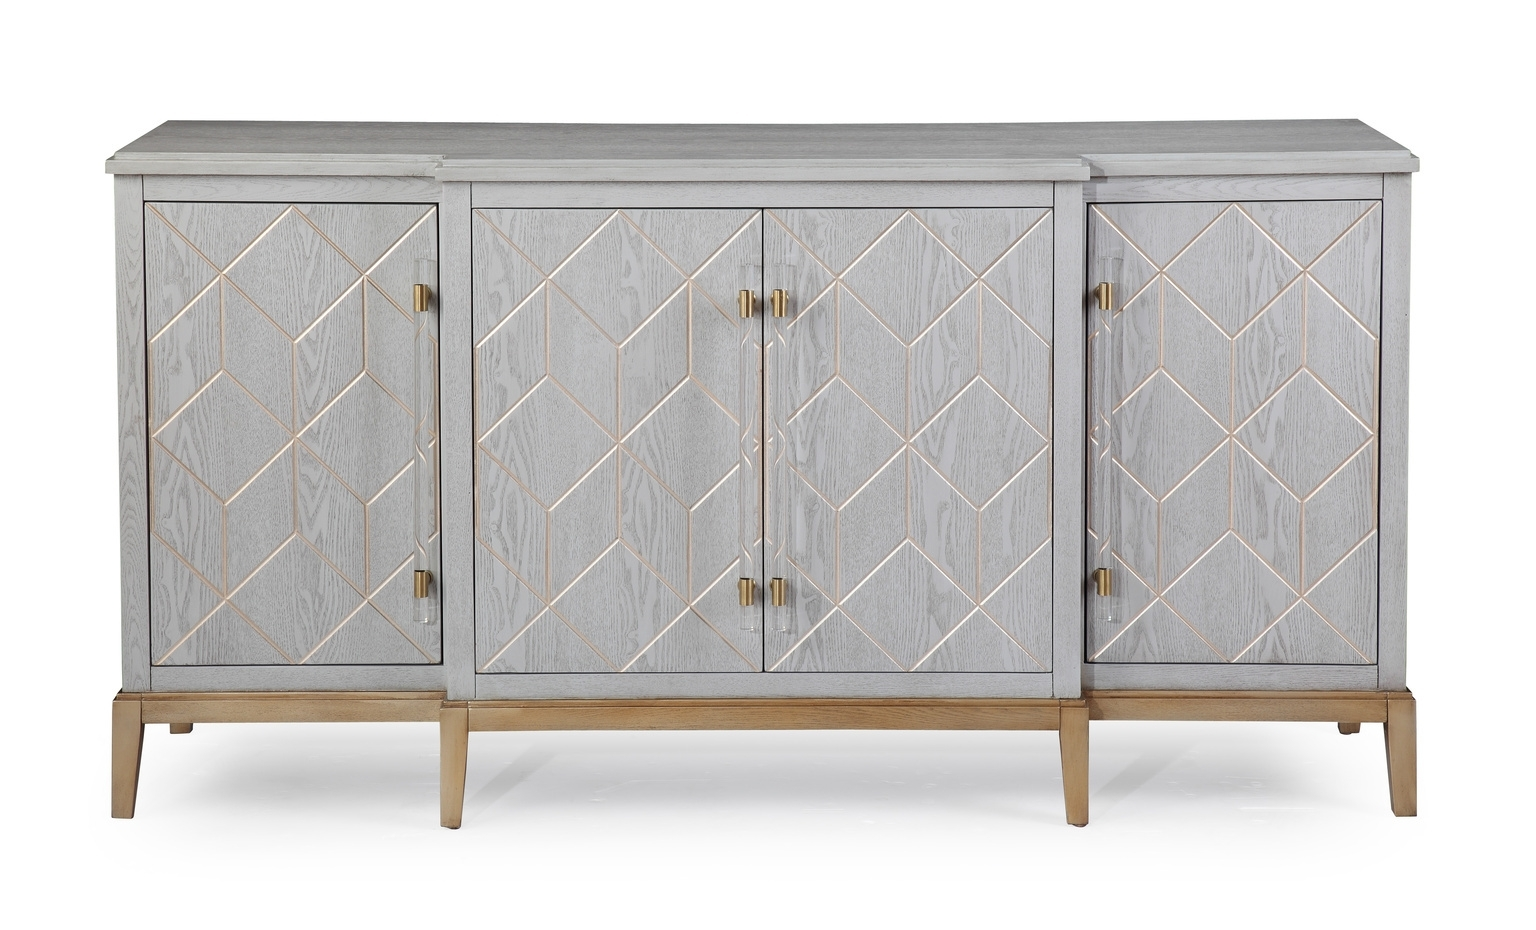 White Wood Gold Base Sideboard Cabinet intended for Geo Pattern Black and White Bone Inlay Sideboards (Image 30 of 30)